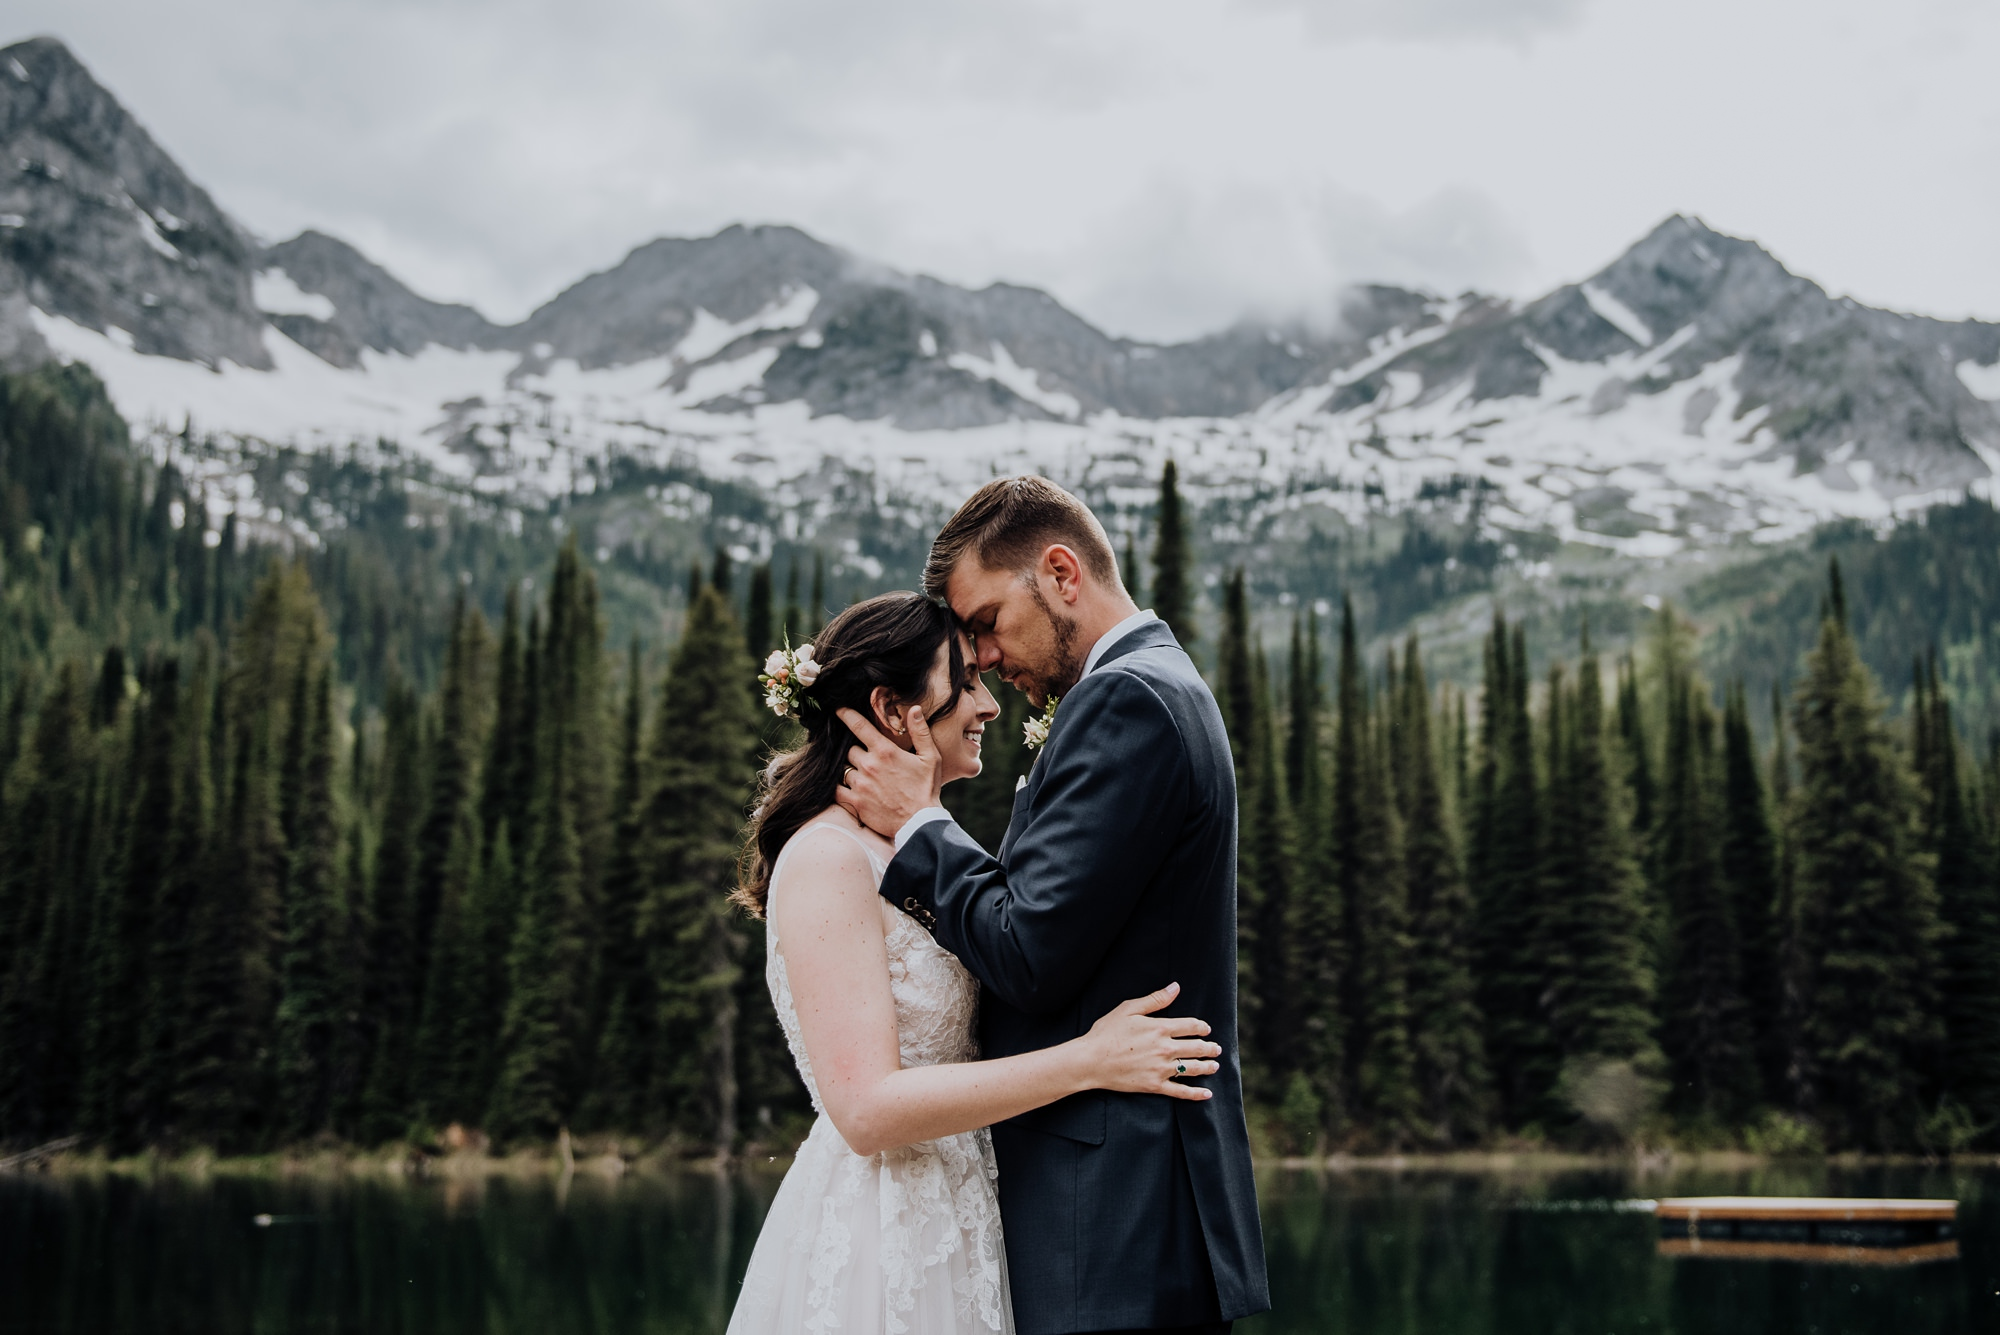 bride and groom at lake during classic, modern mountain wedding at island lake lodge wedding captured by calgary wedding photographer